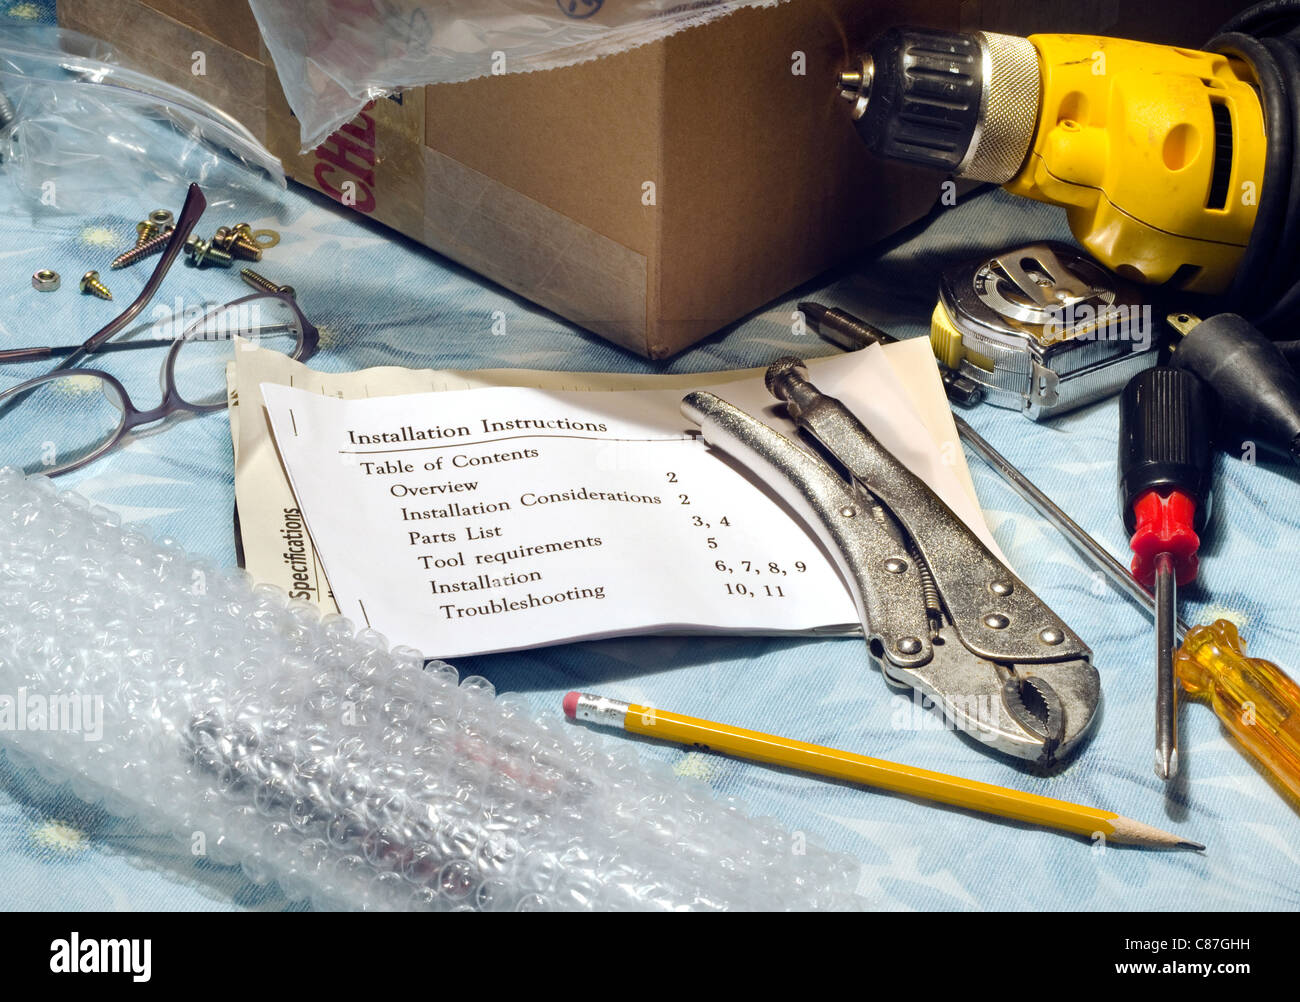 amateur tools with instruction booklet - Stock Image